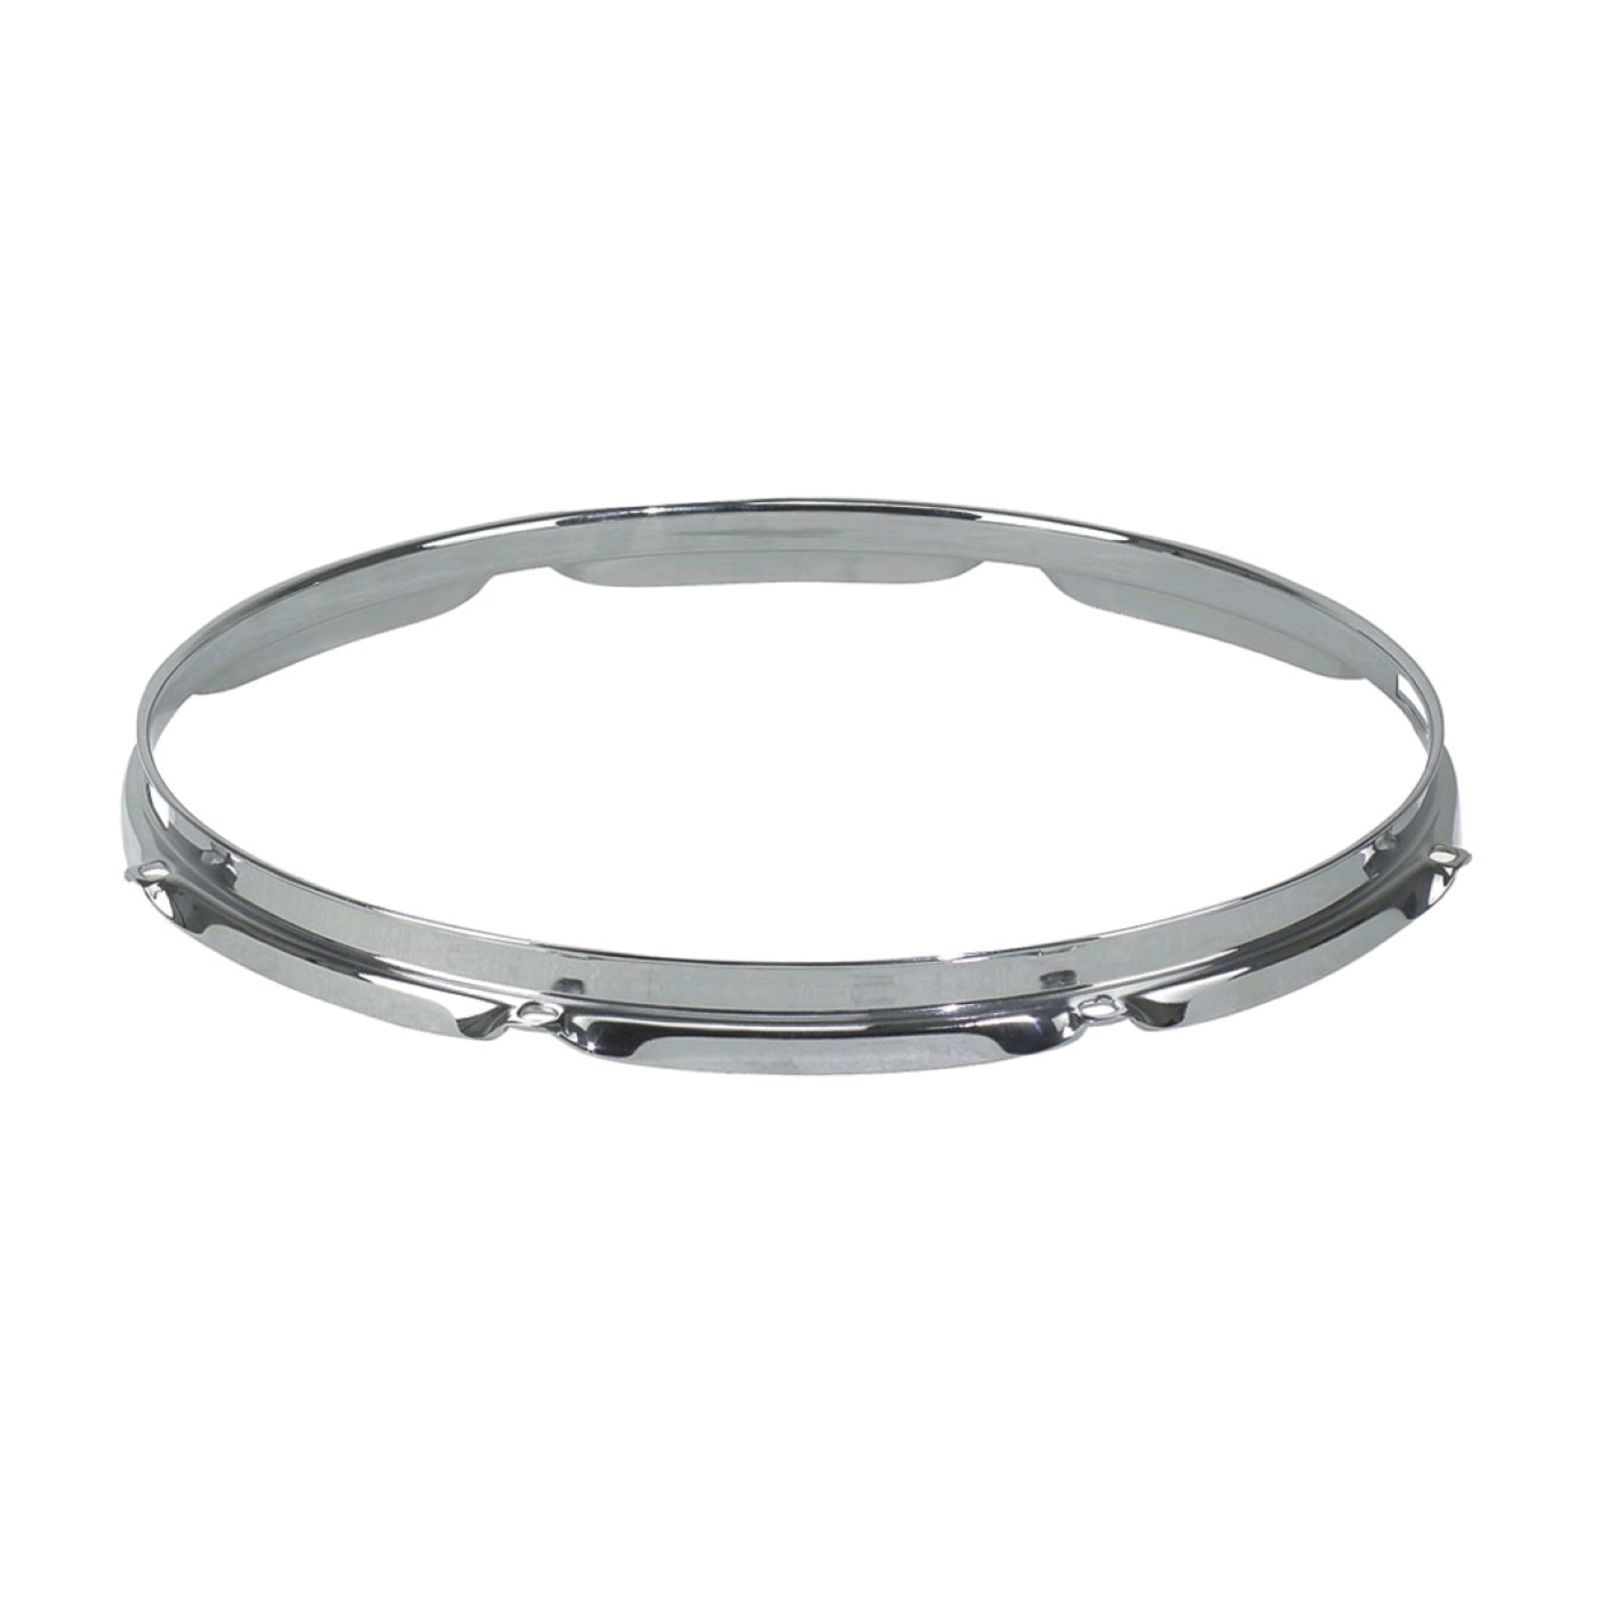 "Dixon Hoop 14"", for snare, 8-hole, snare side Produktbillede"